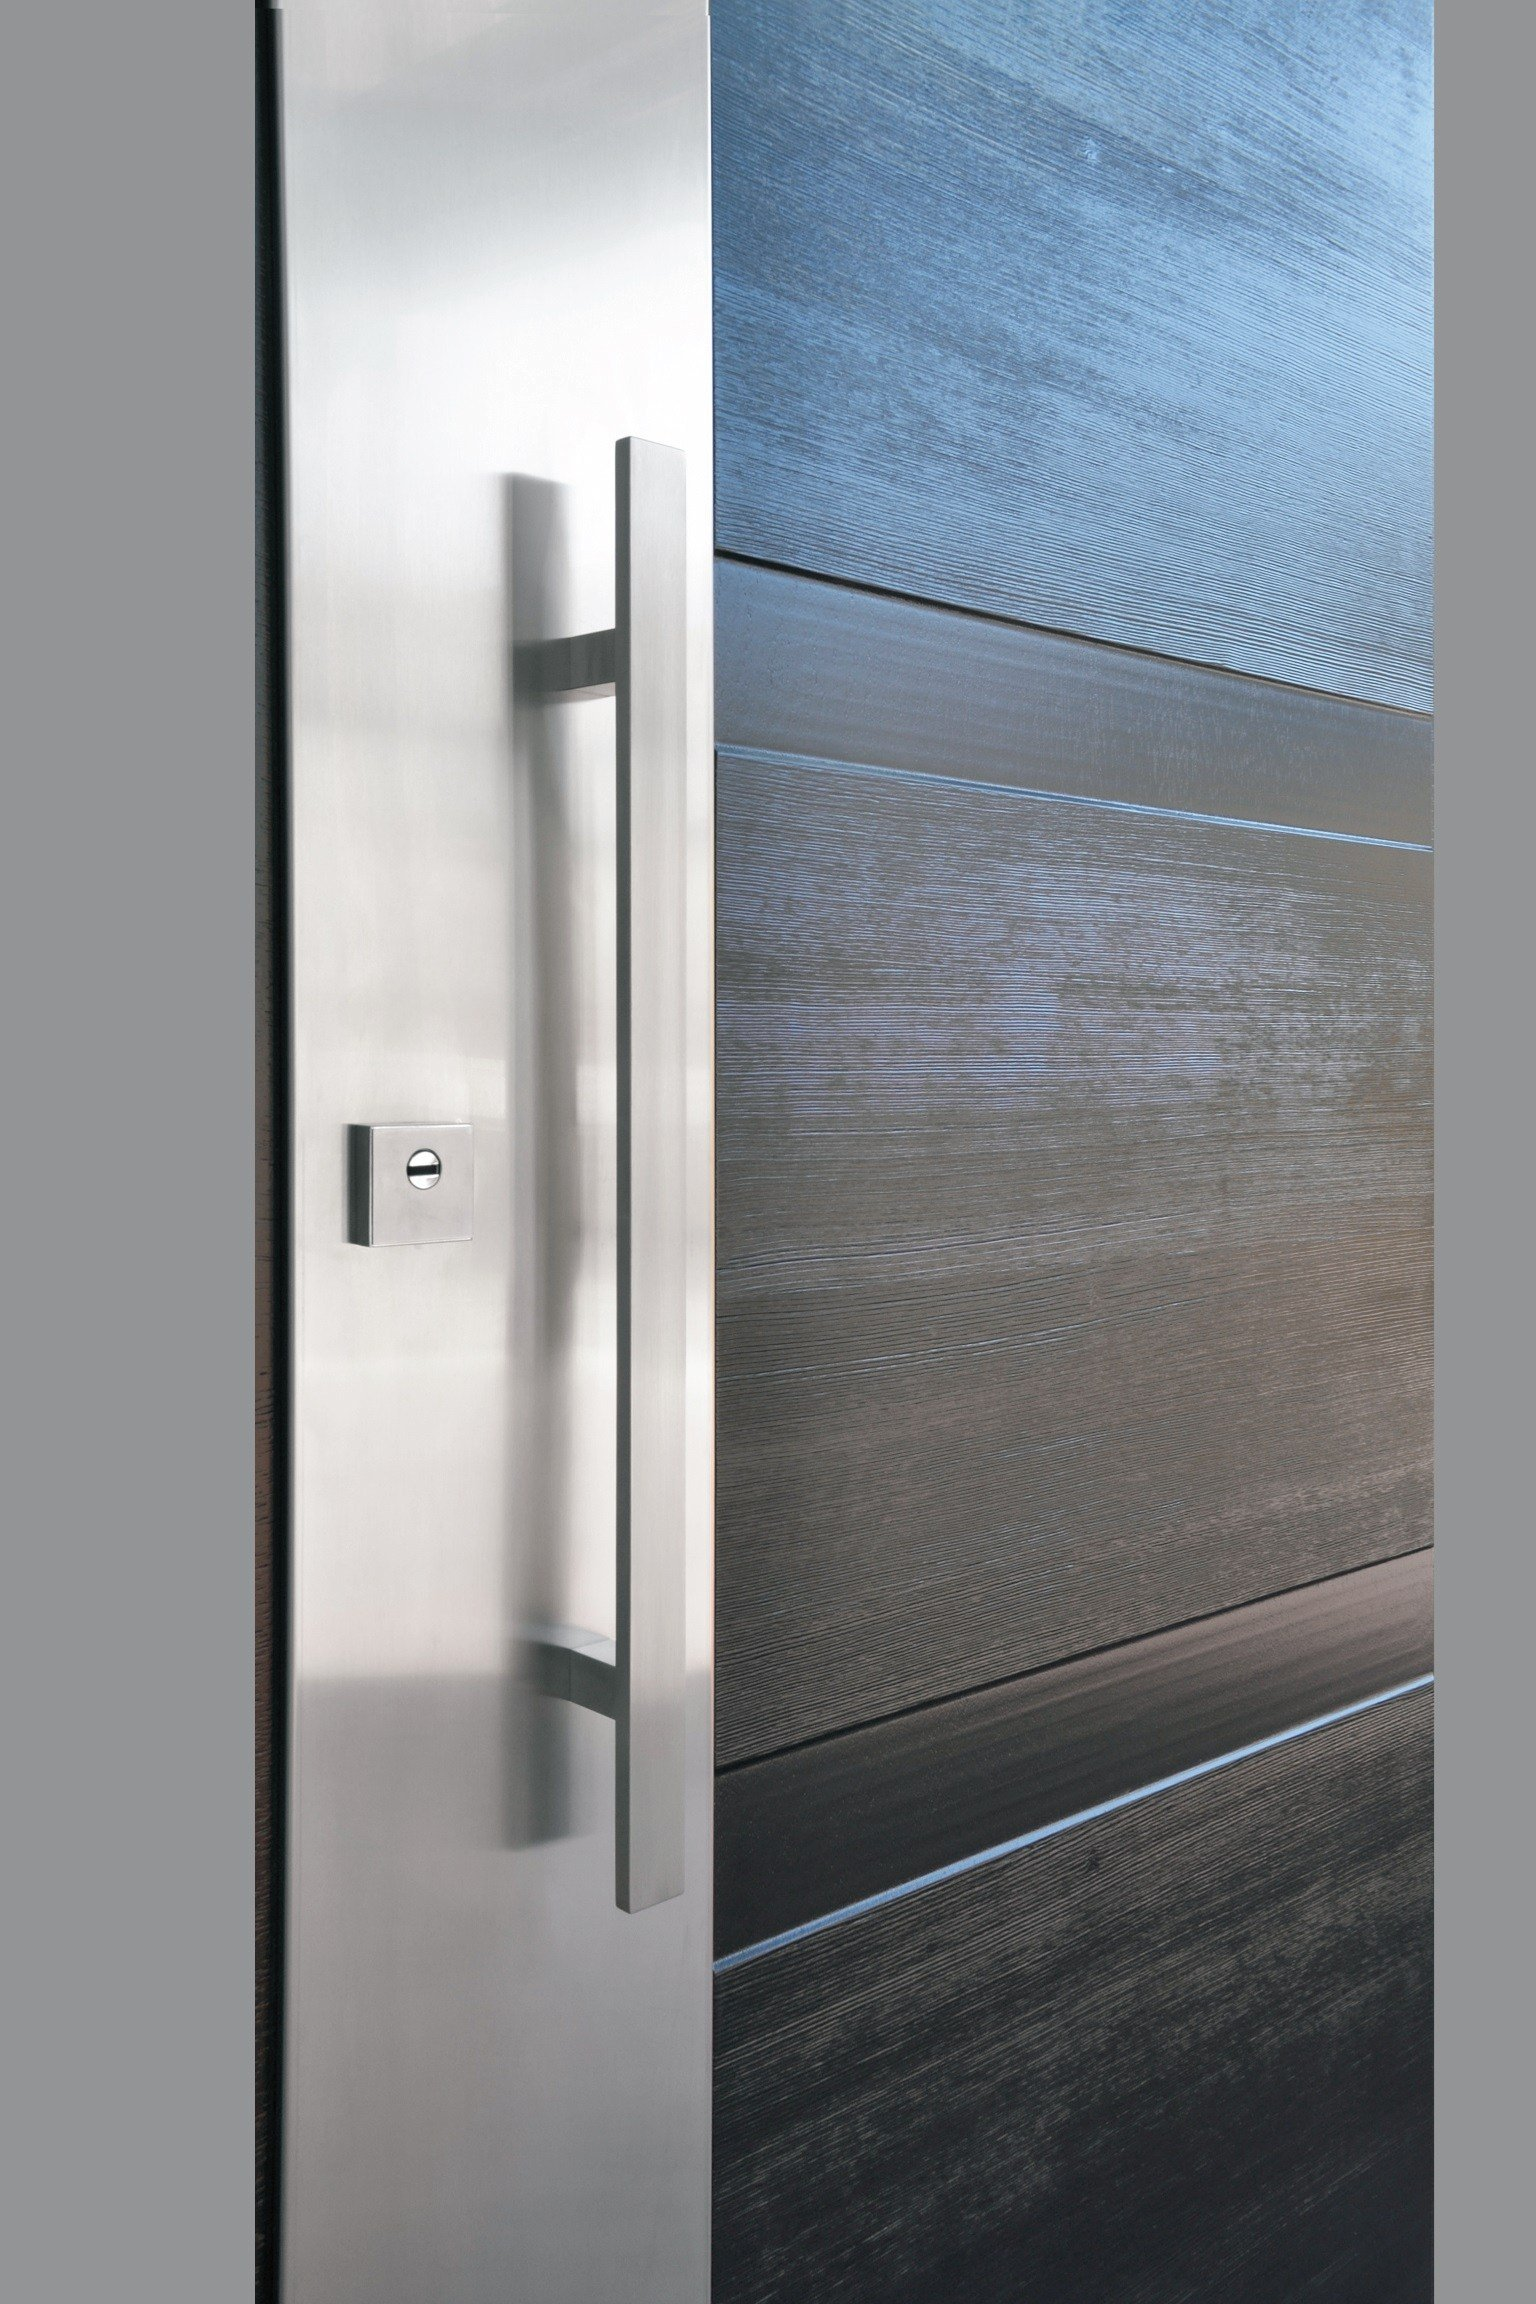 2304 #376894 Stainless Steel And Wood Armoured Door Panel STEEL LEGNO (S711) By OMI  save image Stainless Steel Entrance Doors 47371536